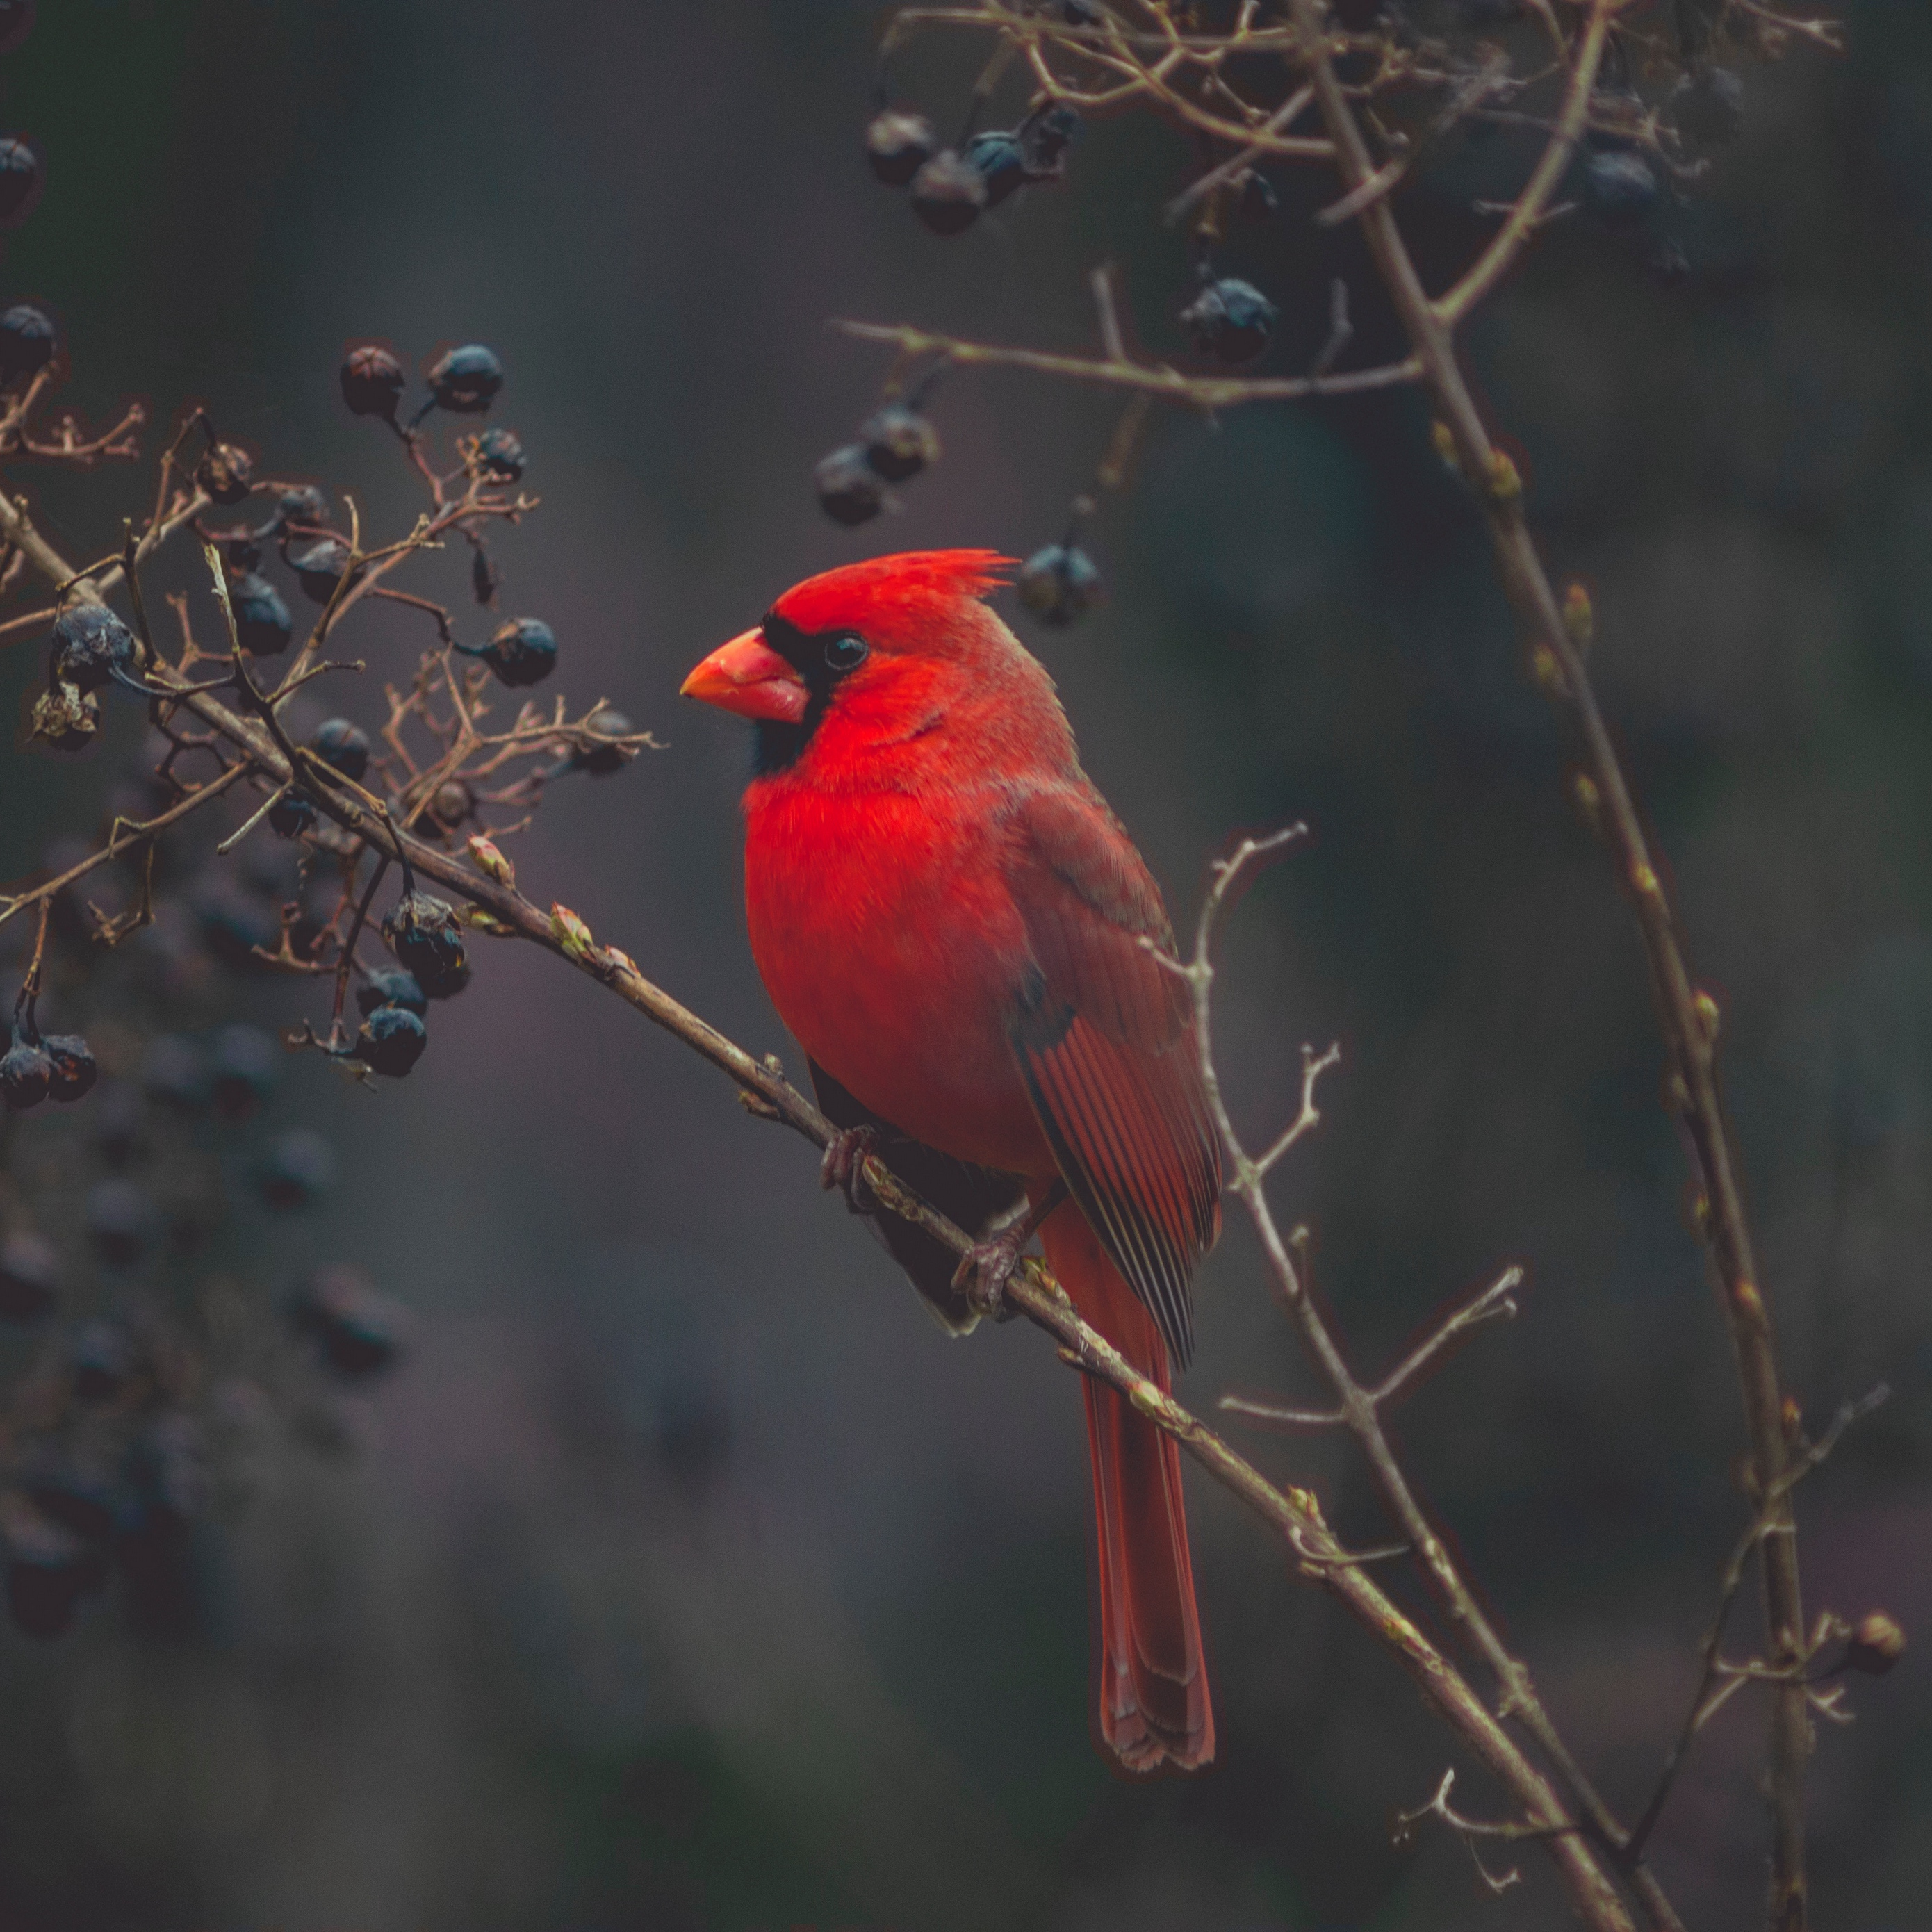 Download wallpaper 2780x2780 cardinal red bird branch ipad air 2780x2780